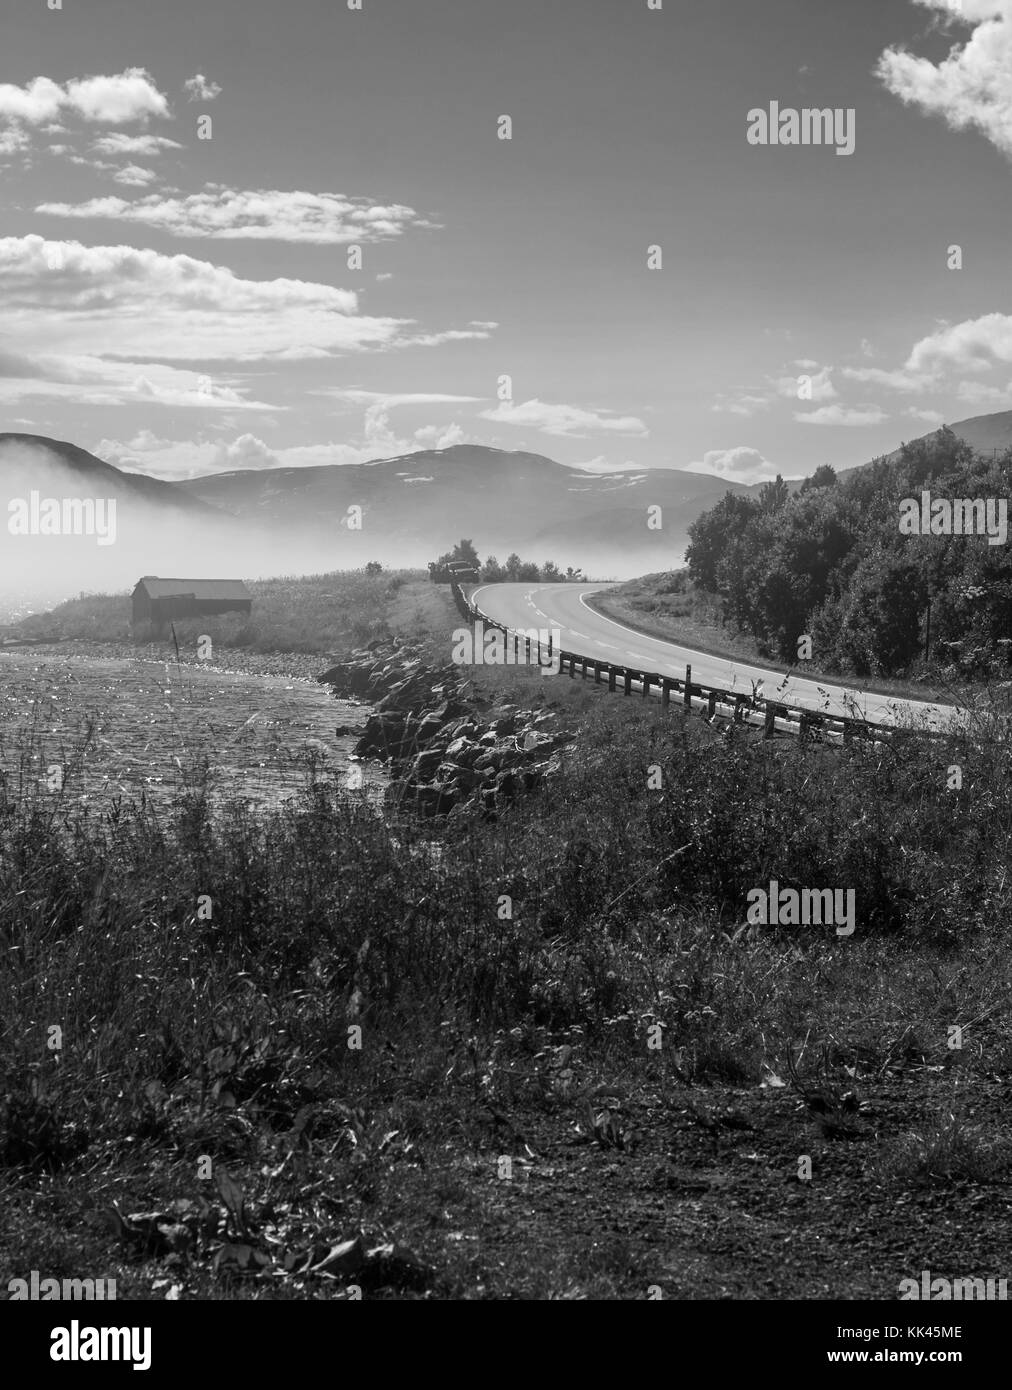 A steep curve of the road against the backdrop of mountains - Stock Image